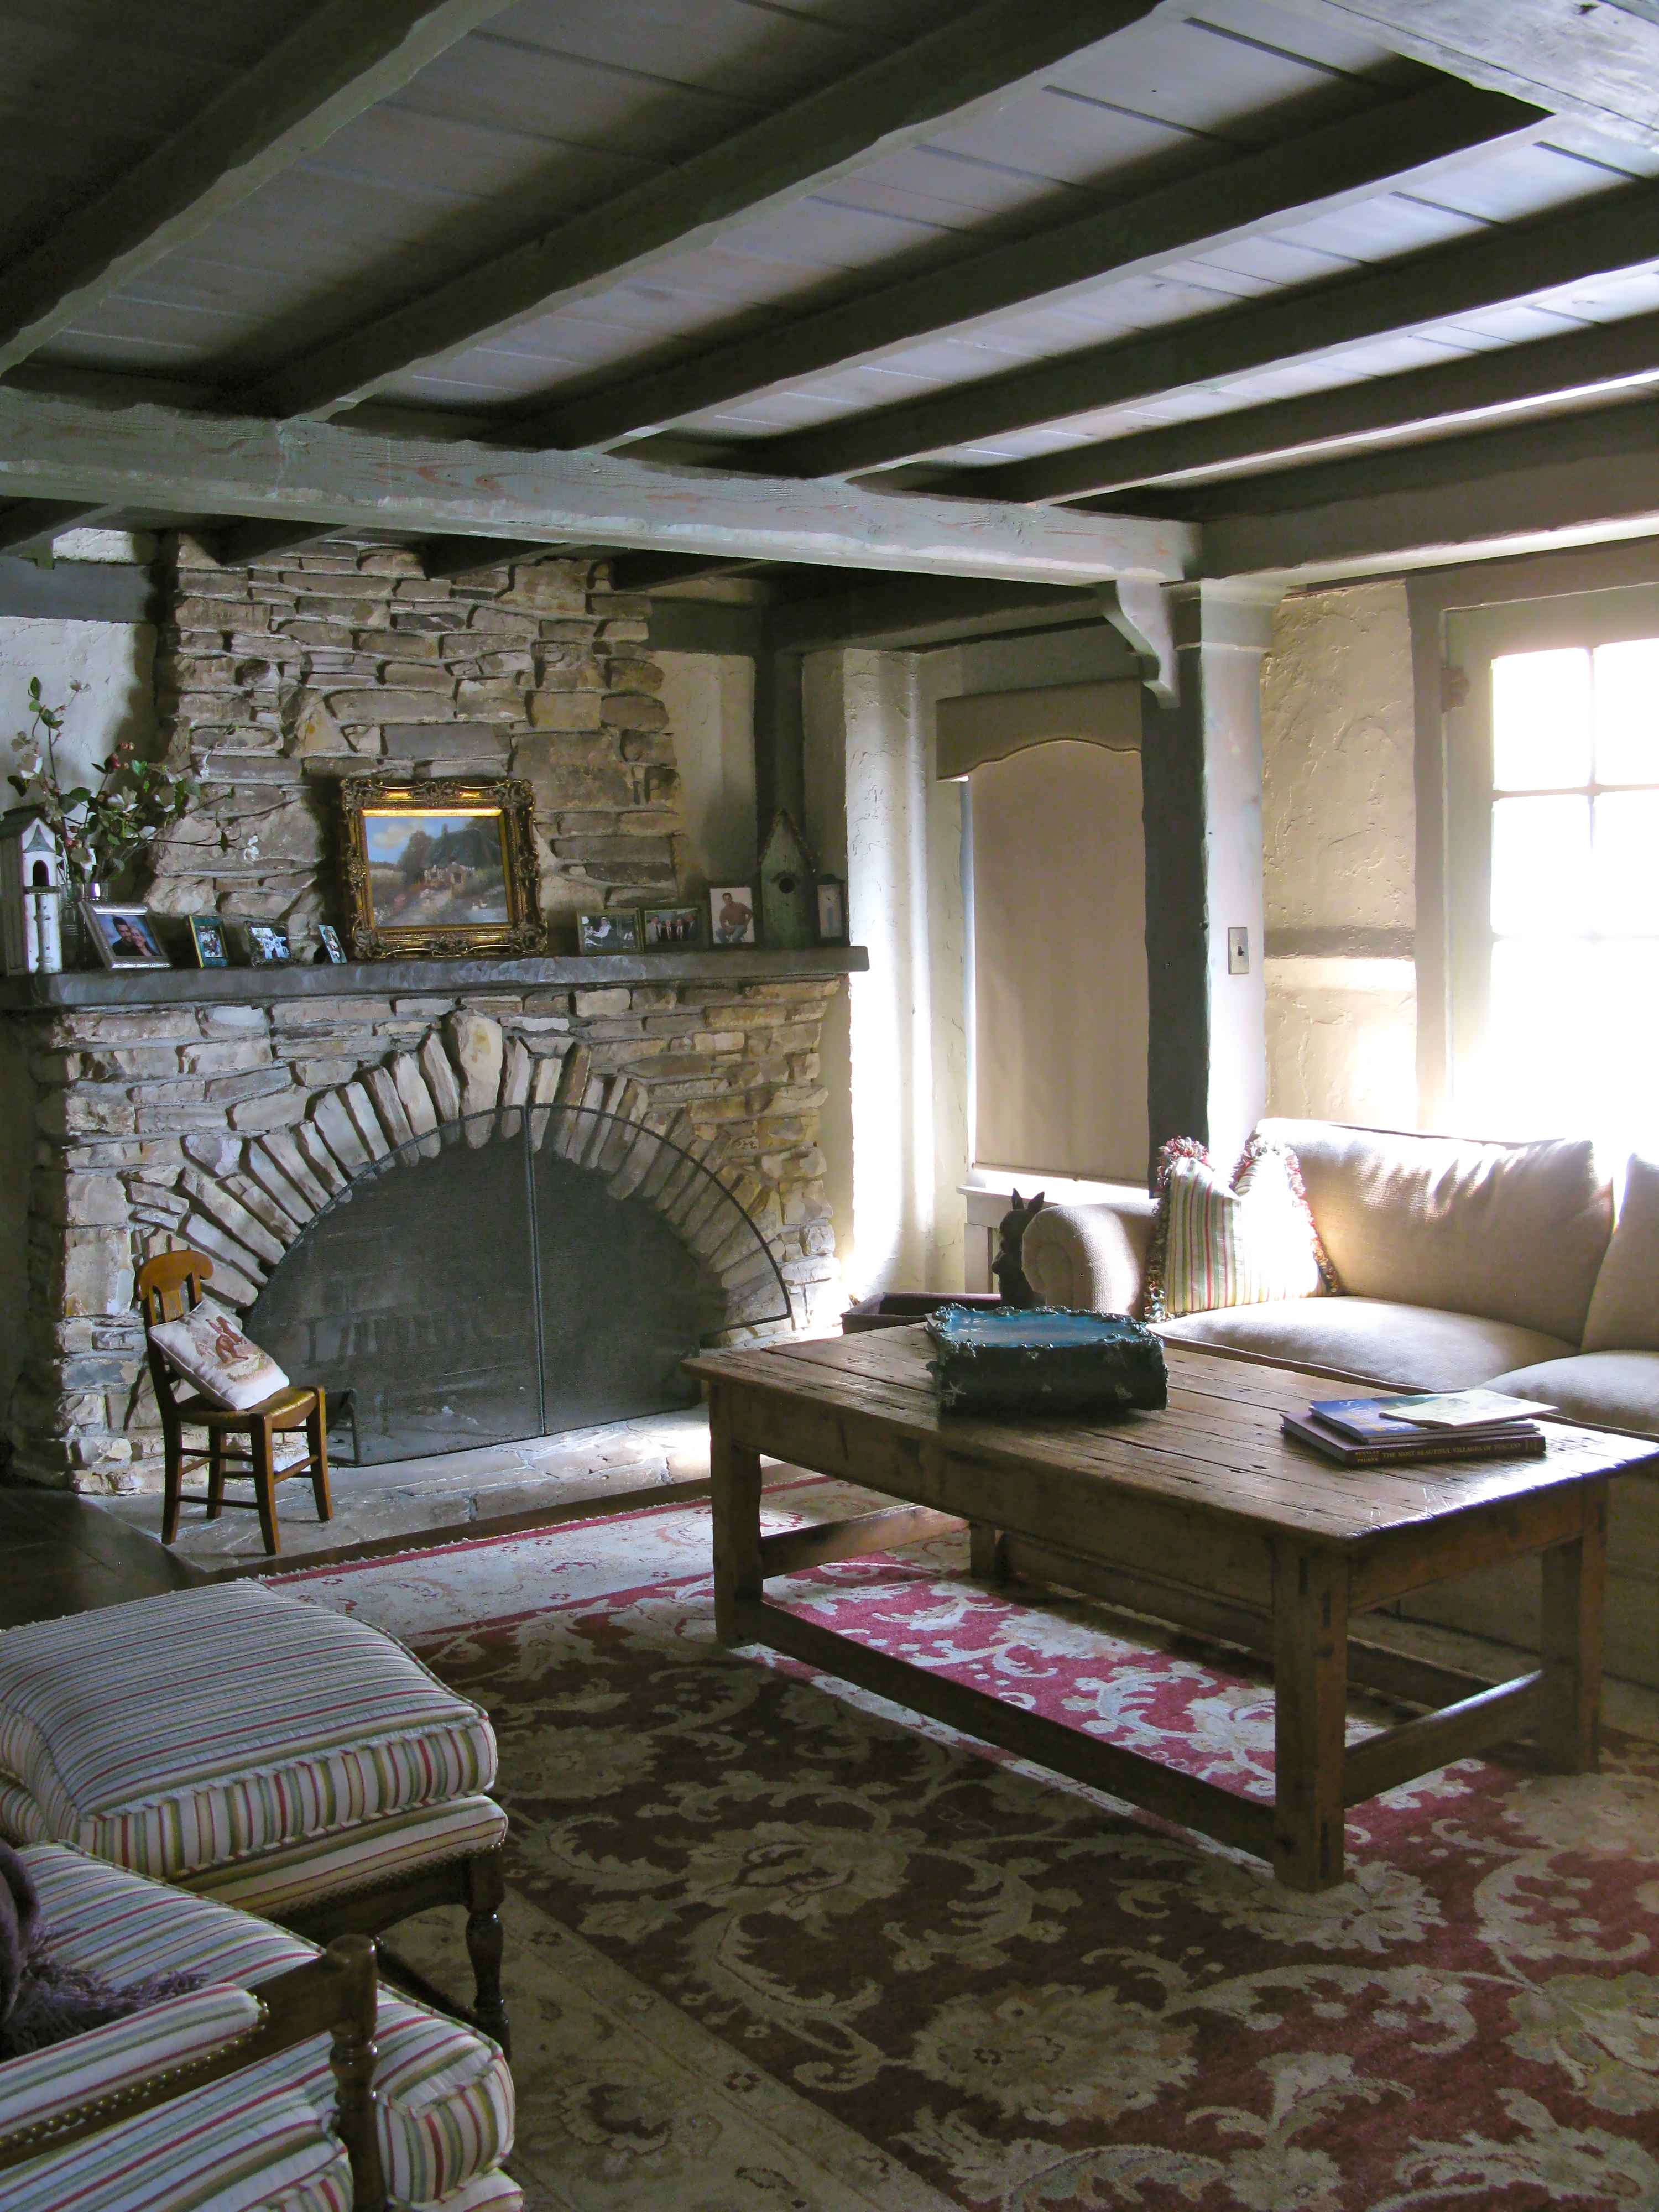 I AM INVITED TO TOUR HUGH COMSTOCK'S COTTAGE | Once upon a ...